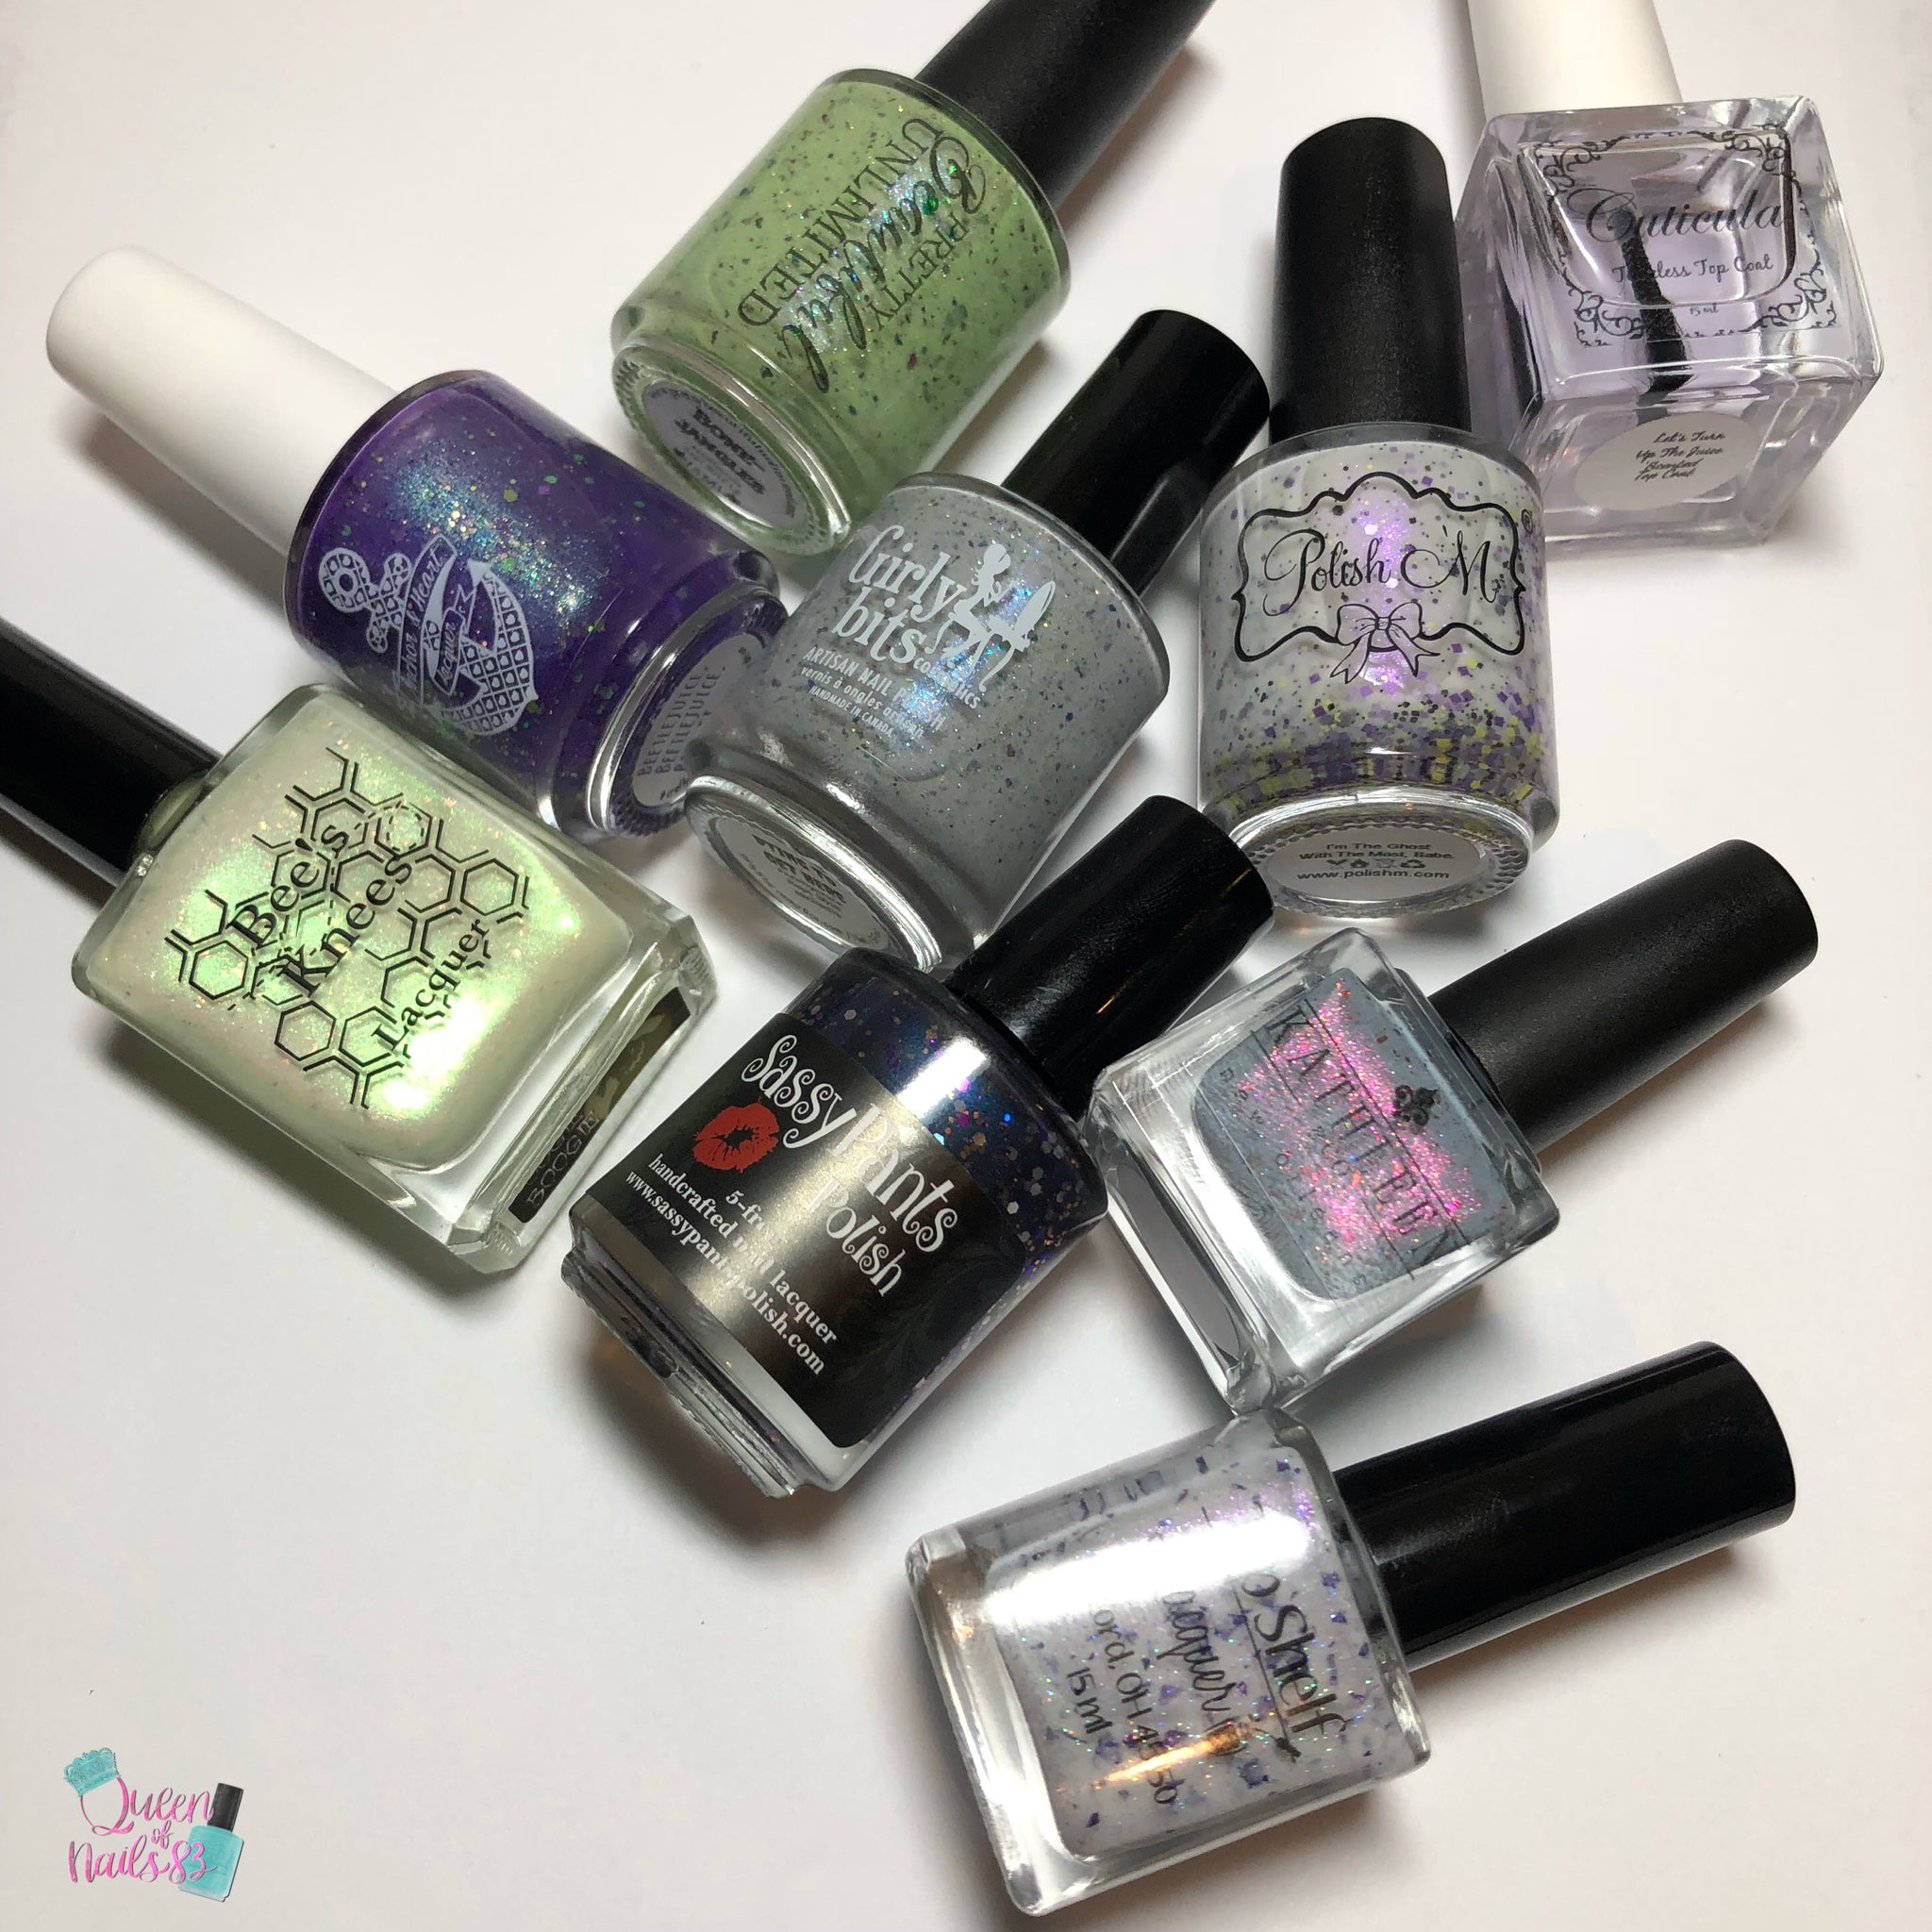 #crellycrate Bespoke Trios RE-visioned review by Queenofnails83